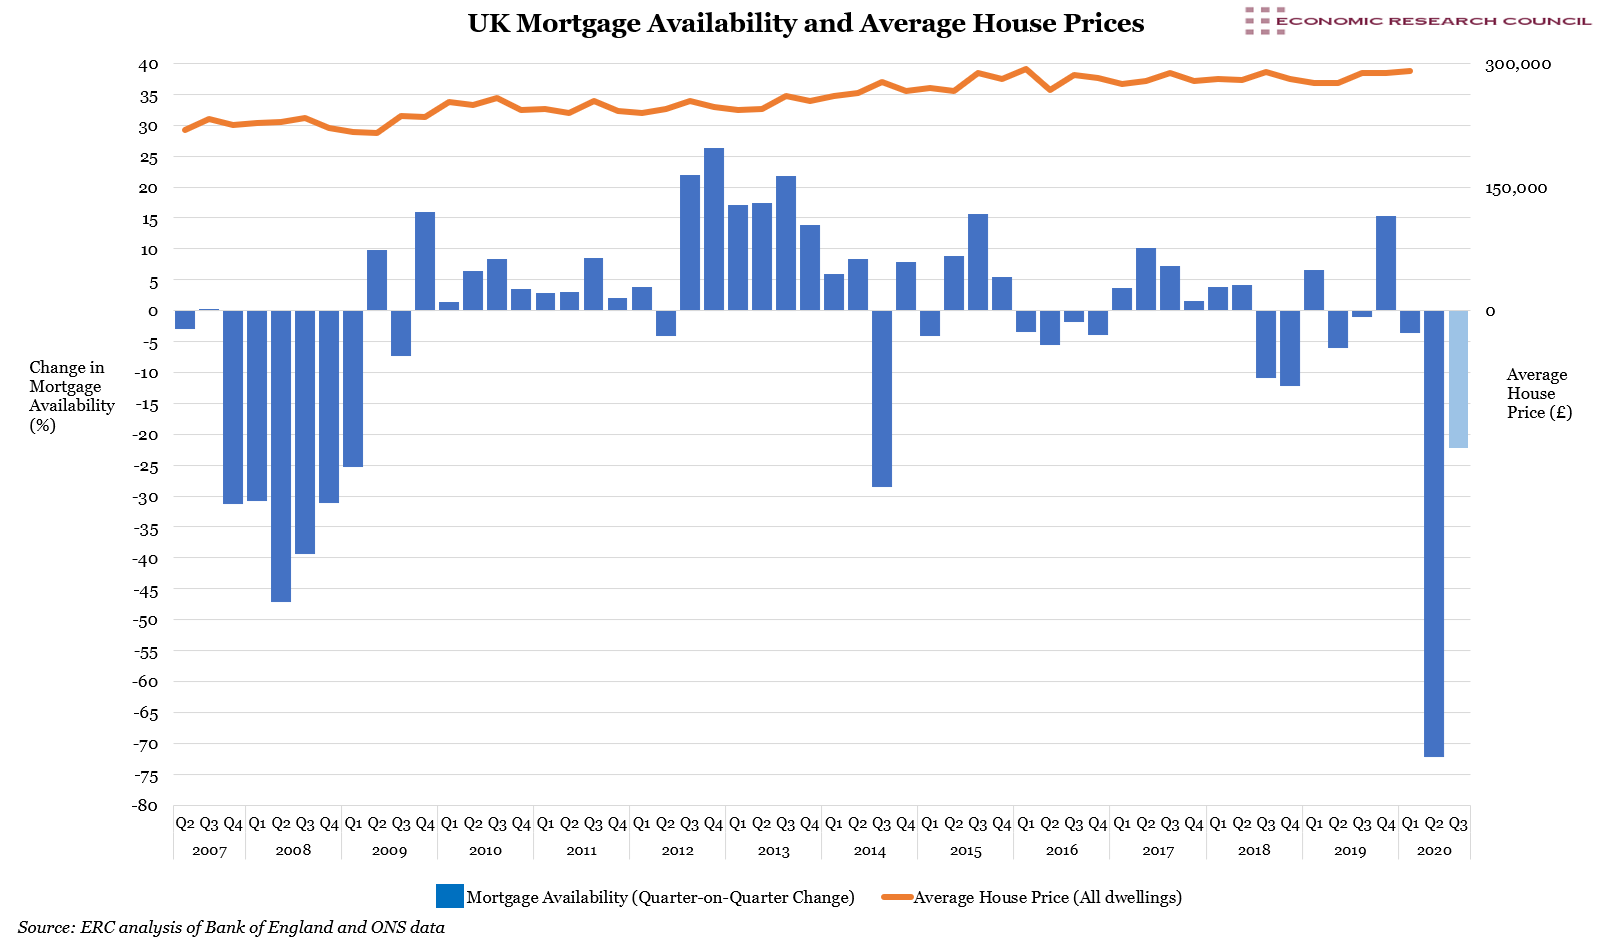 UK Mortgage Availability and Average House Prices